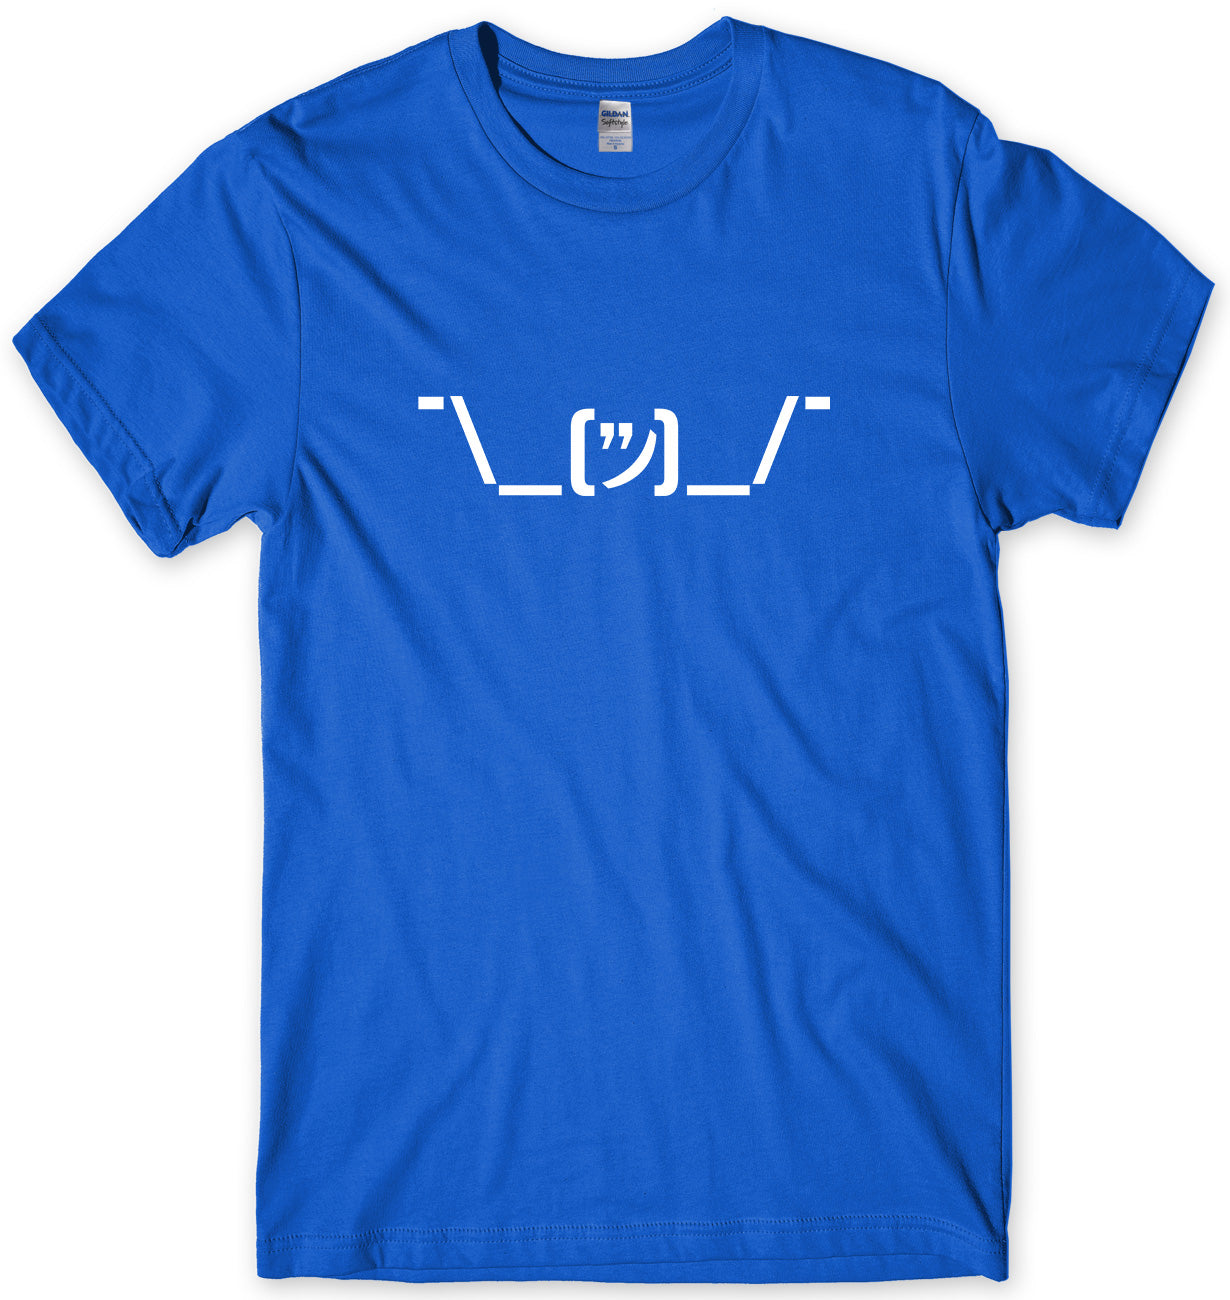 SHRUG CHARACTER KEYBOARD MENS FUNNY UNISEX T-SHIRT